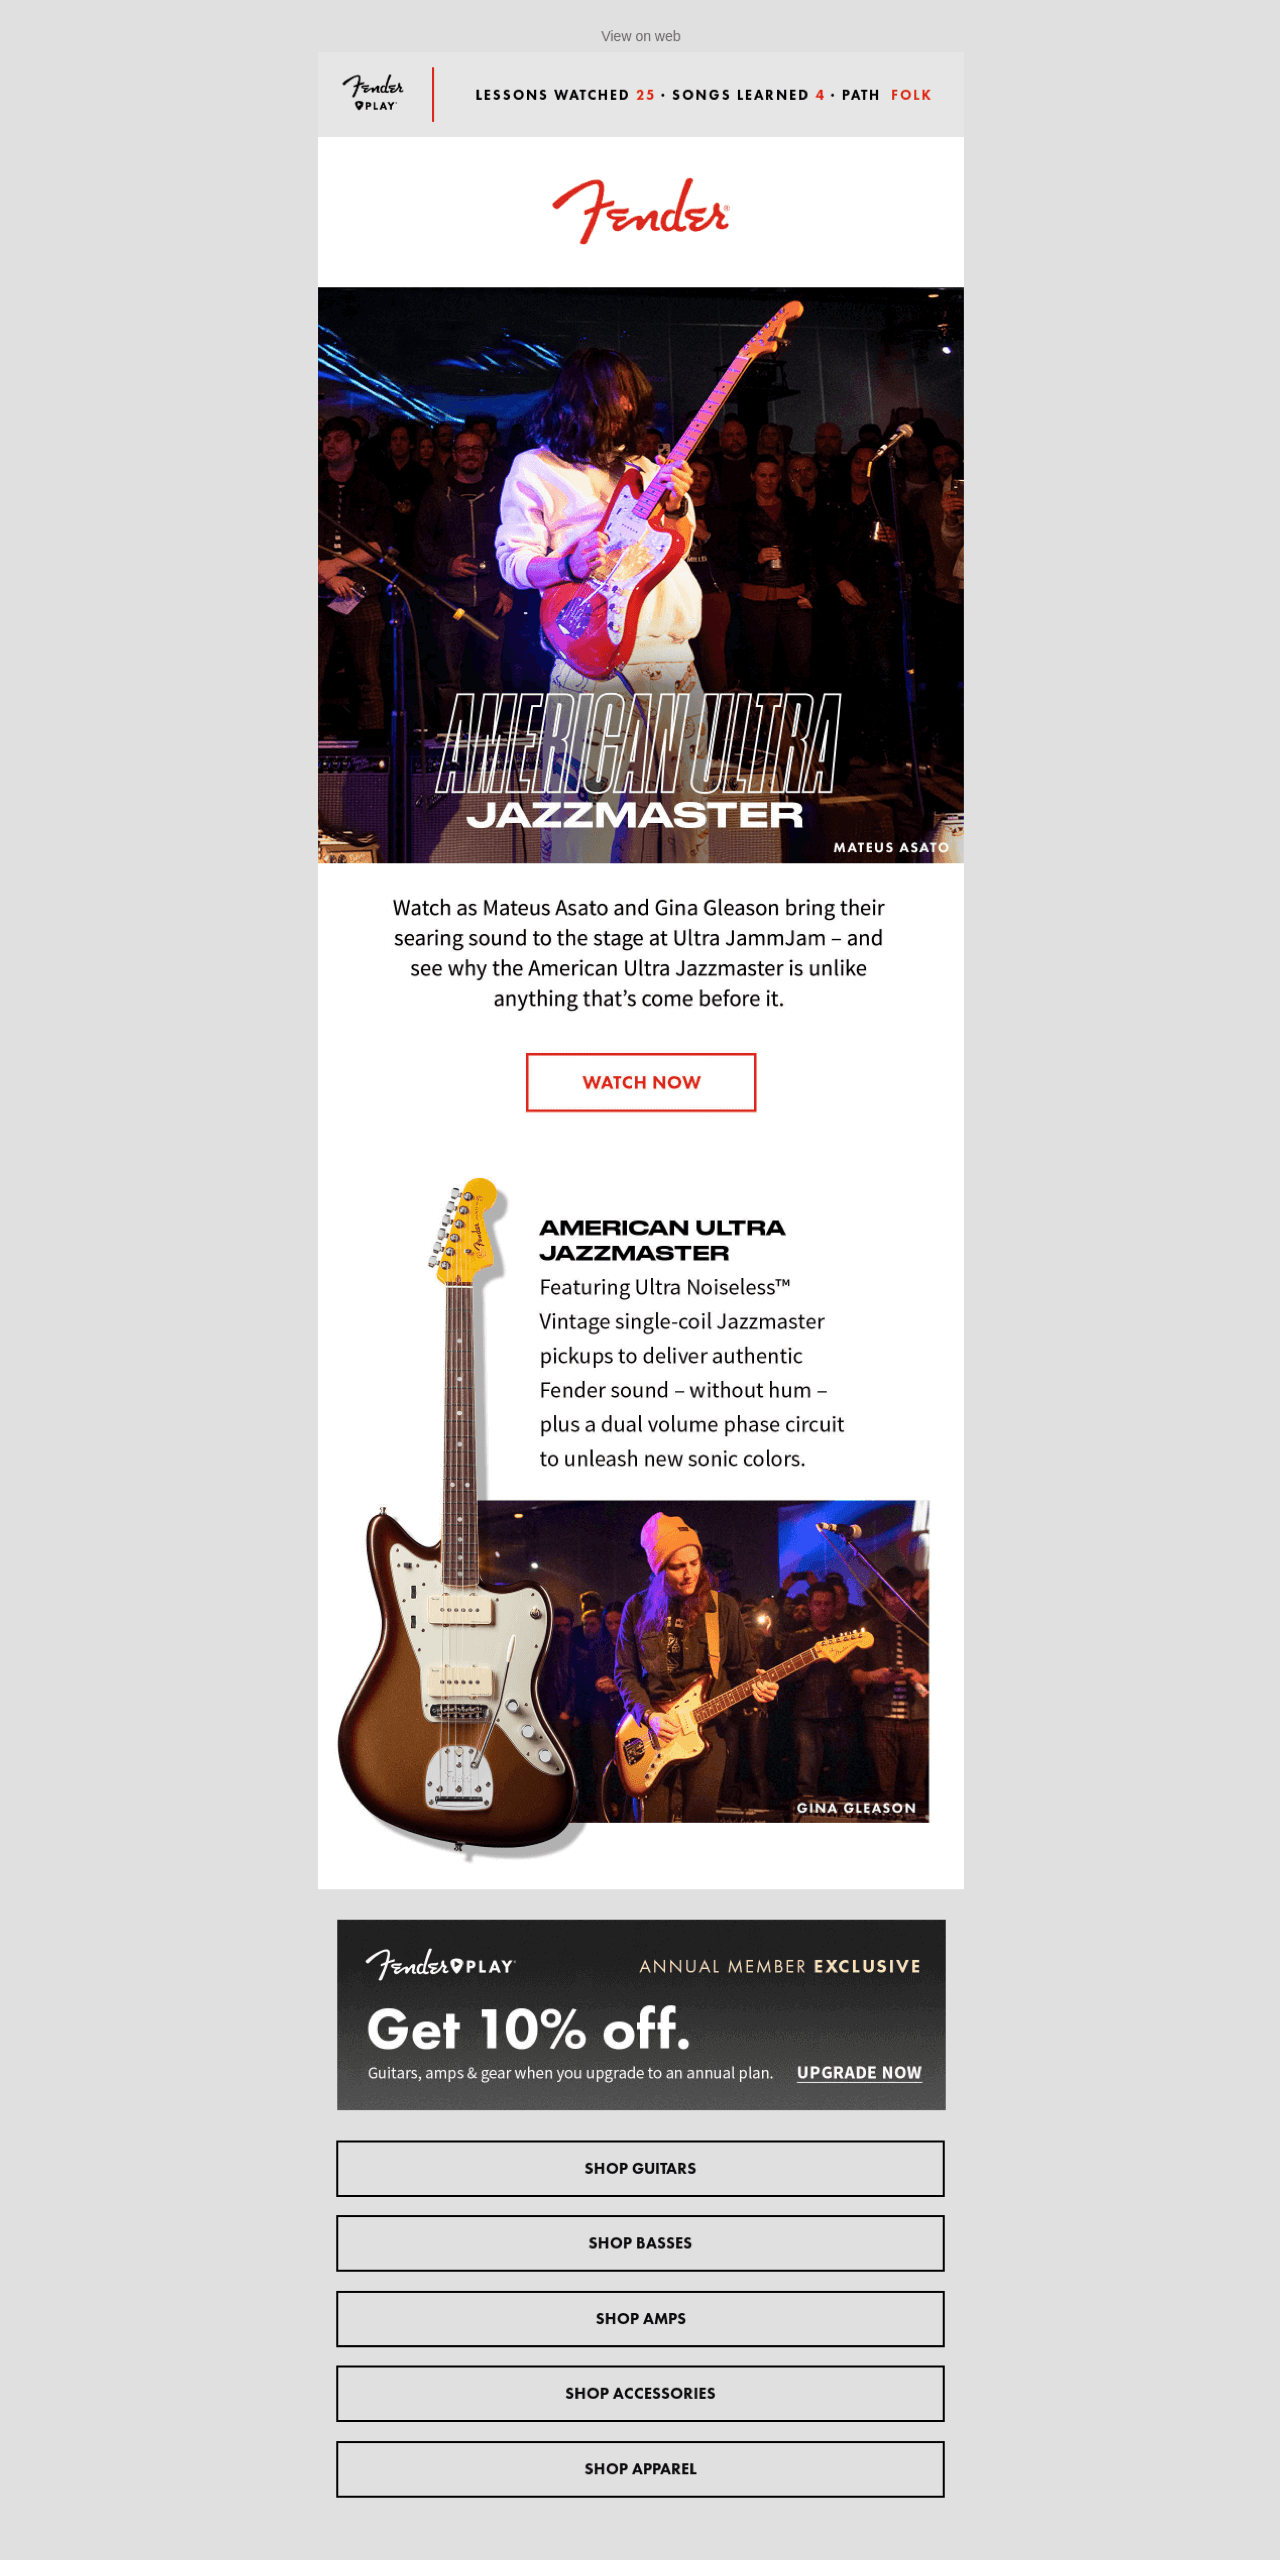 Fender uses social proof in their email marketing campaign to boost sales